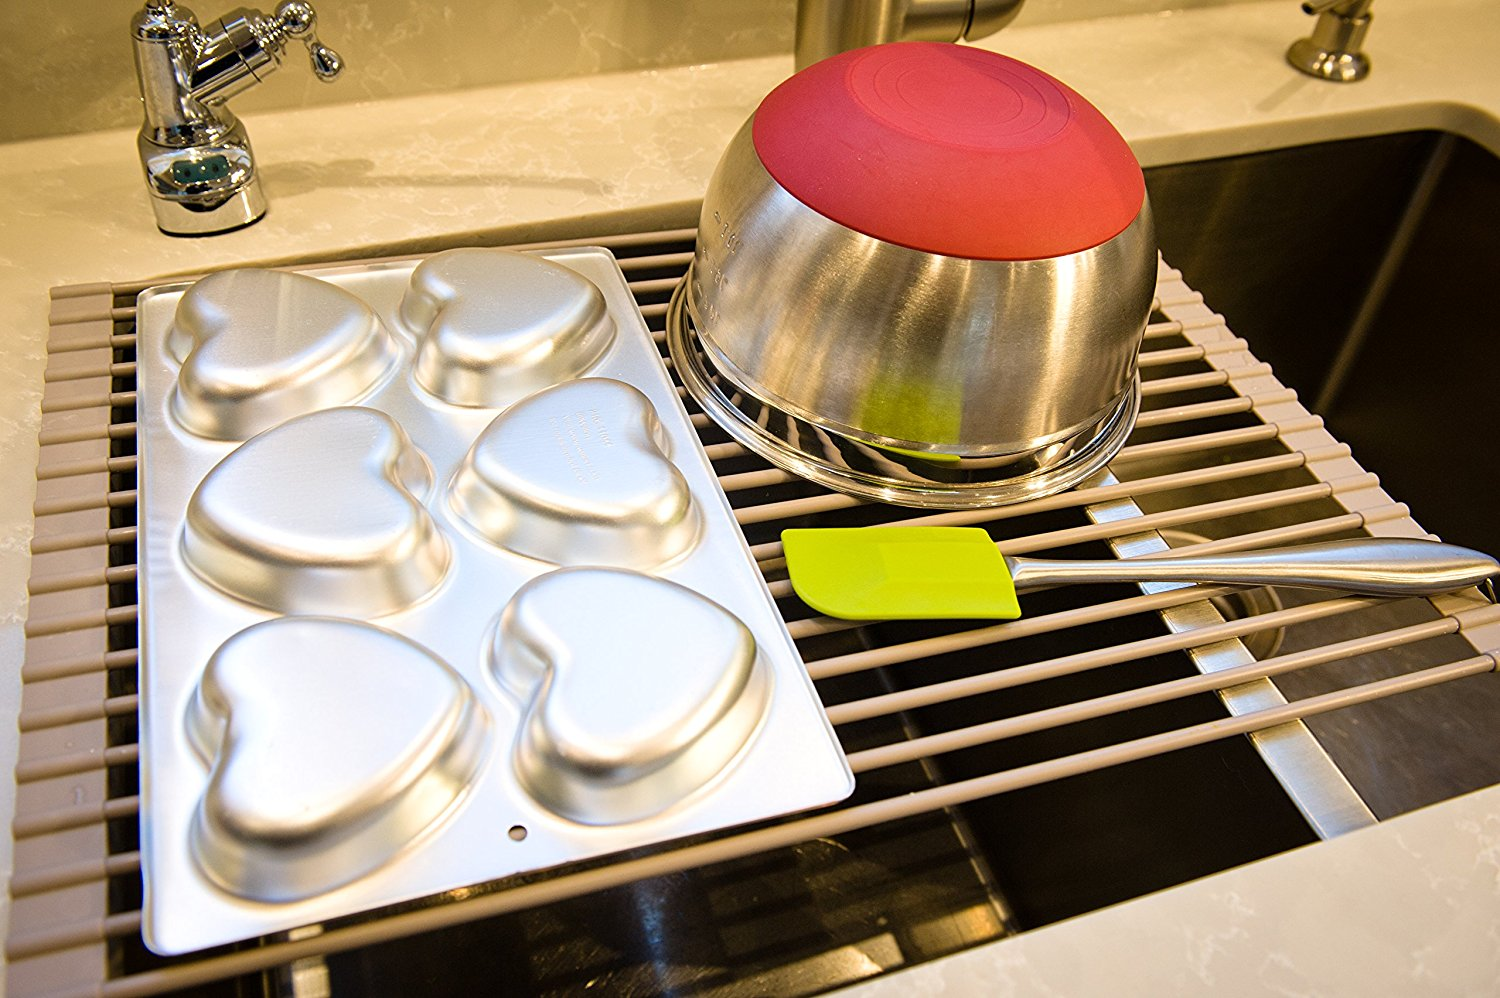 Best Over The Sink Dish Drainer For Your Kitchen The